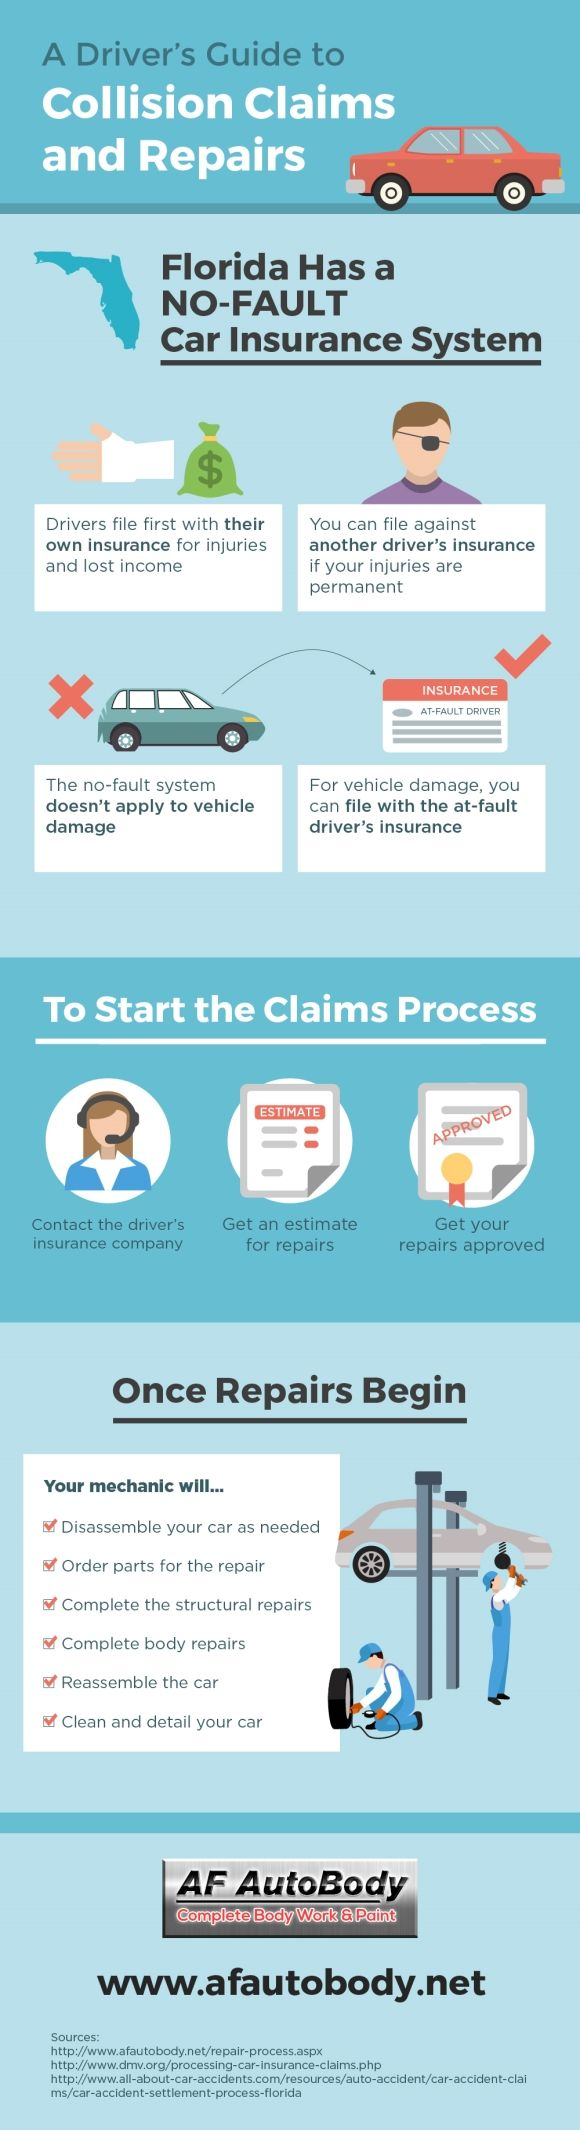 Florida has a nofault car insurance system. What does